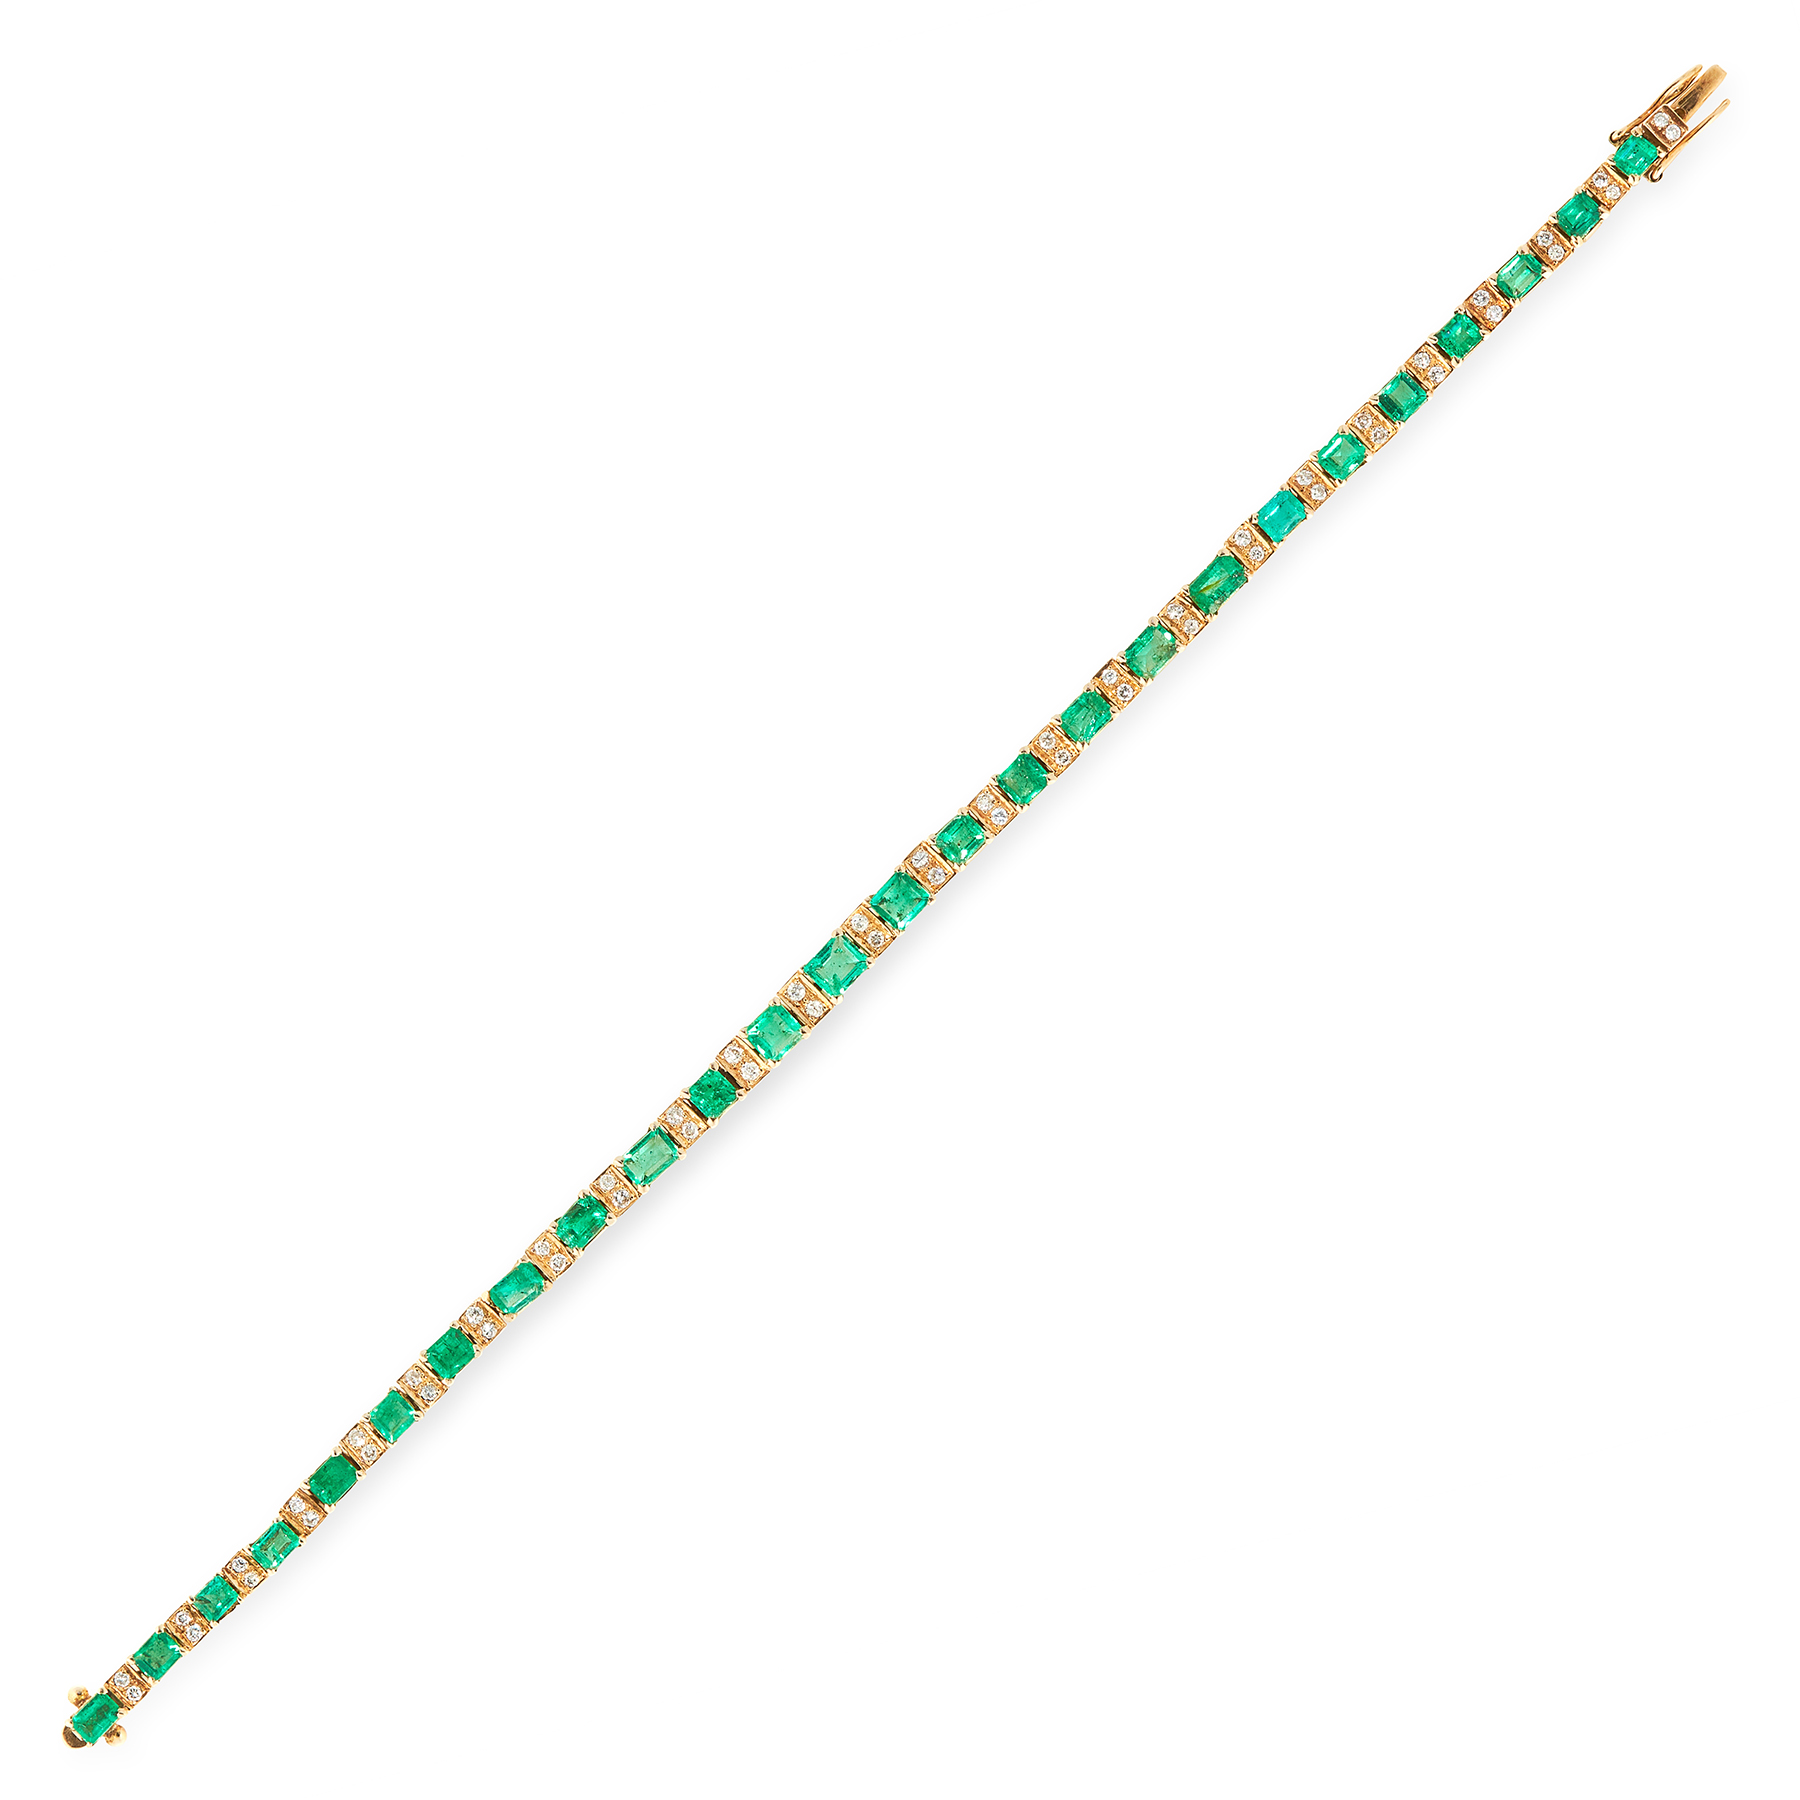 AN EMERALD AND DIAMOND BRACELET in 18ct yellow gold, comprising a single row of twenty six graduated